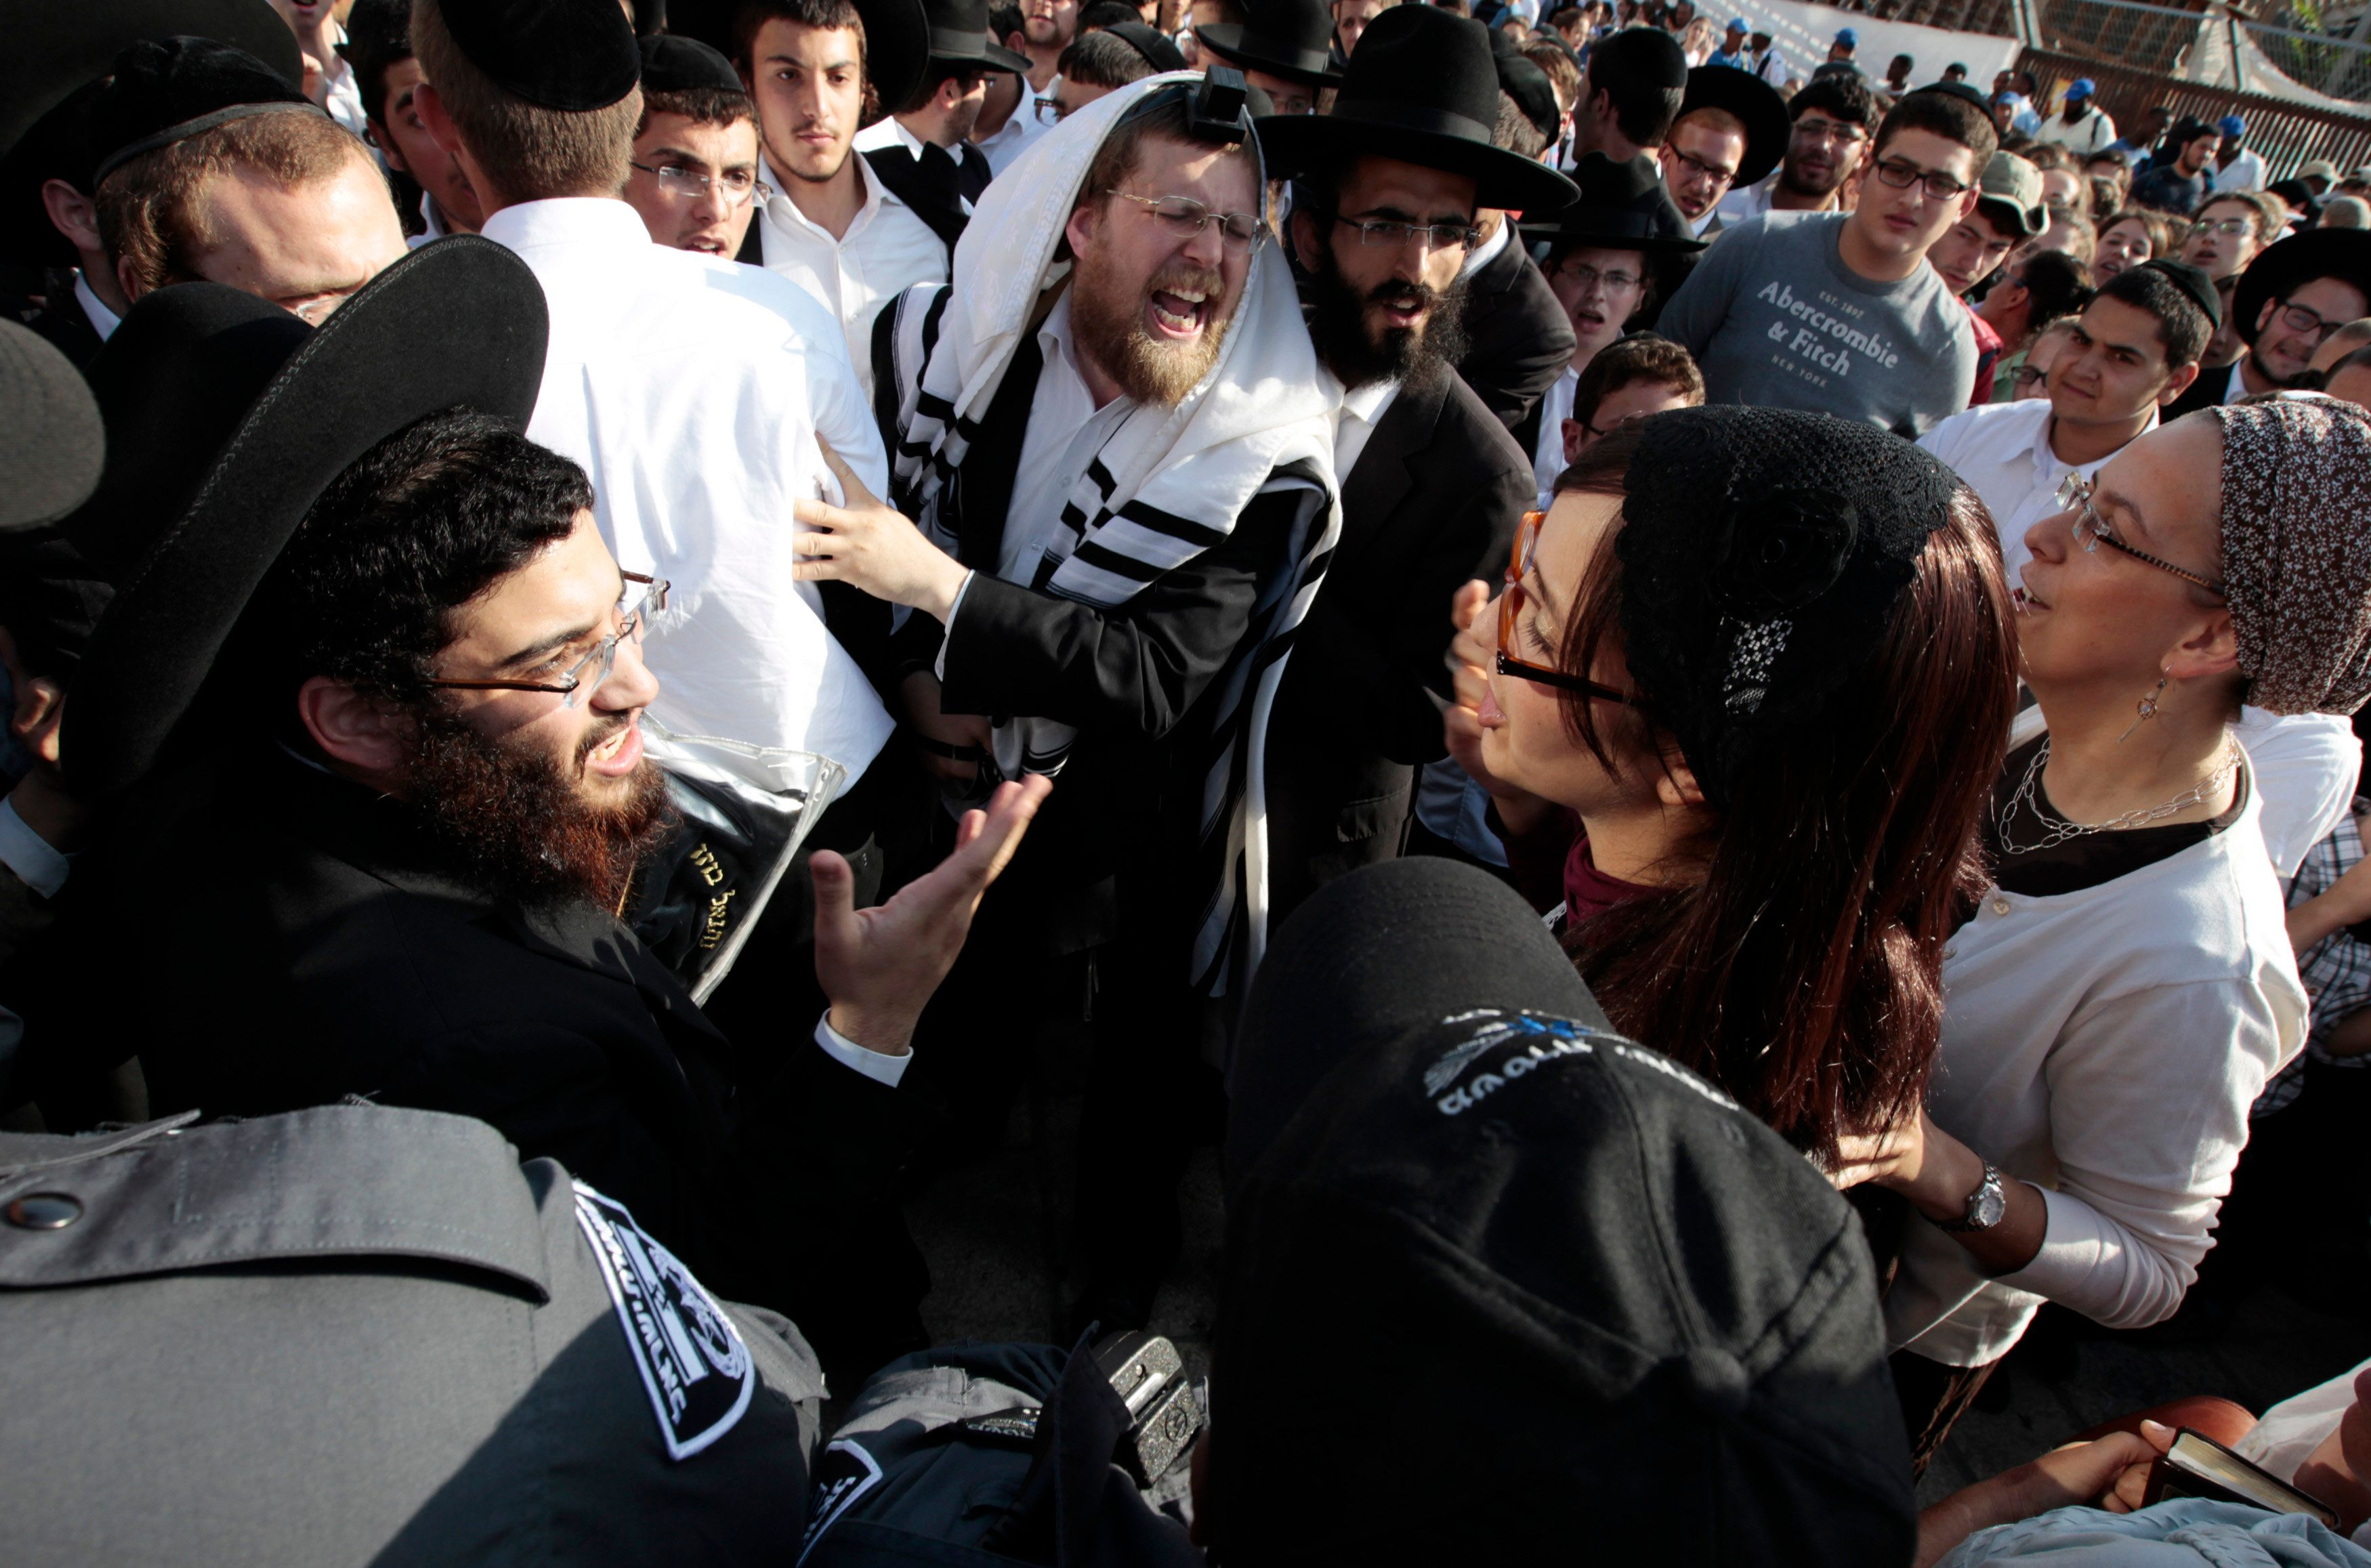 Ultra-Orthodox Jewish men shout at Jewish female activists, members of the Women of the Wall group, during a monthly prayer s